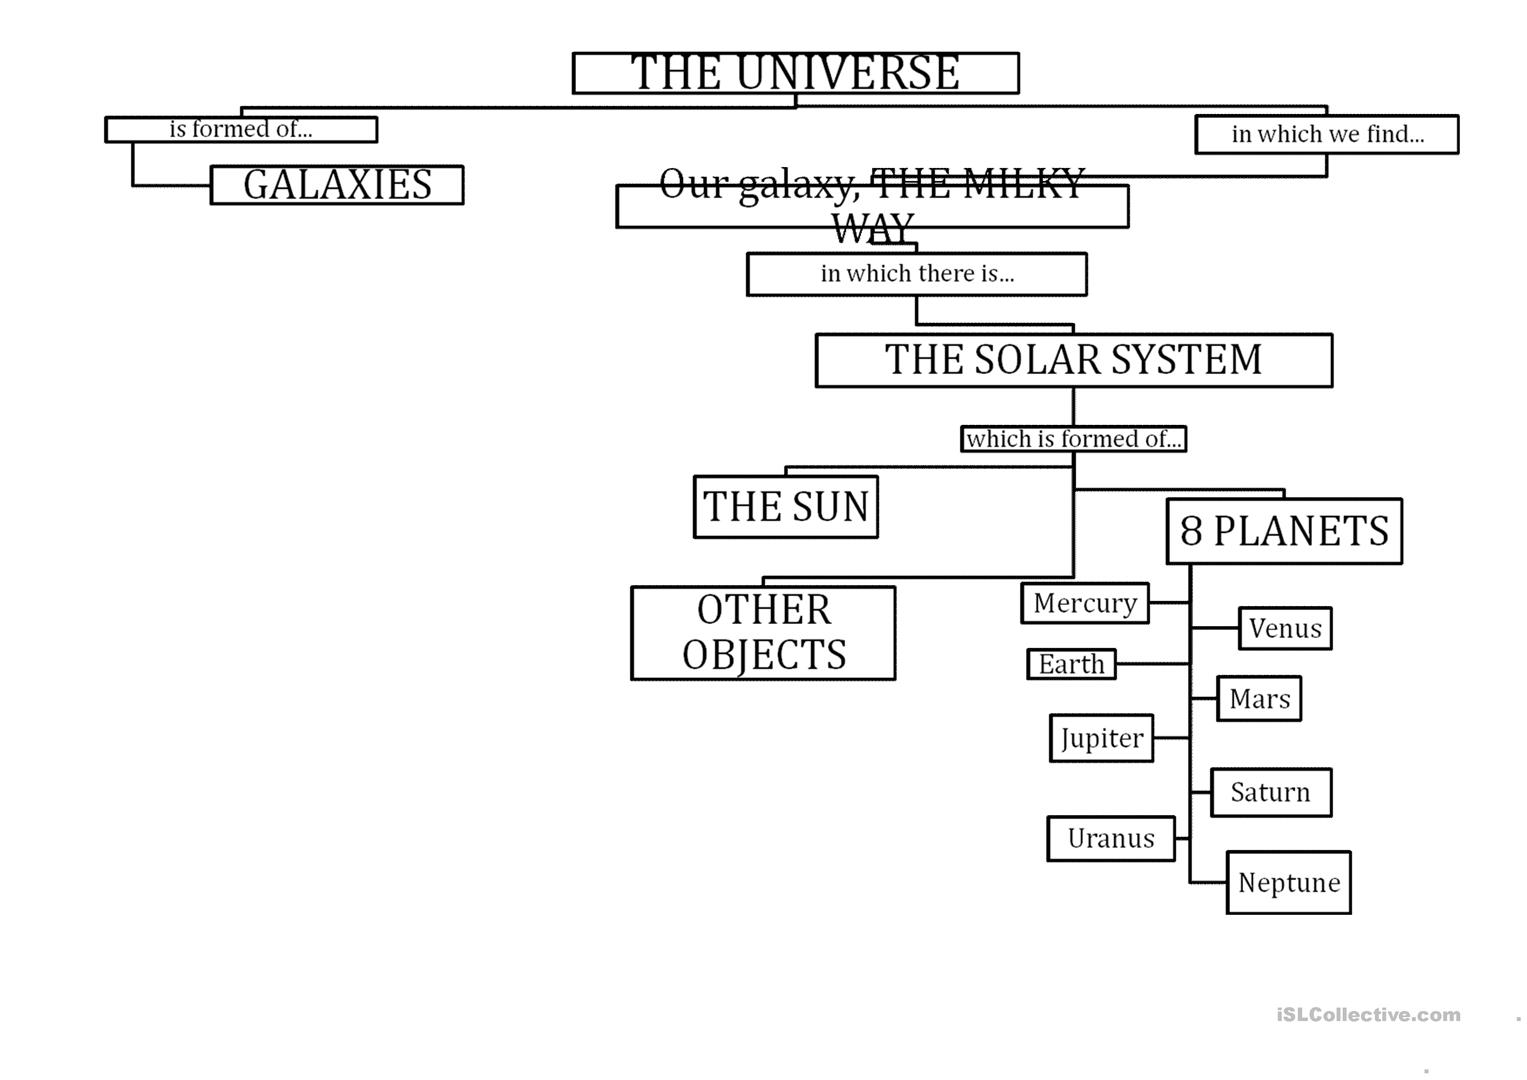 Workbooks solar system for kids worksheets : Flow Chart Worksheets Image collections - Free Any Chart Examples